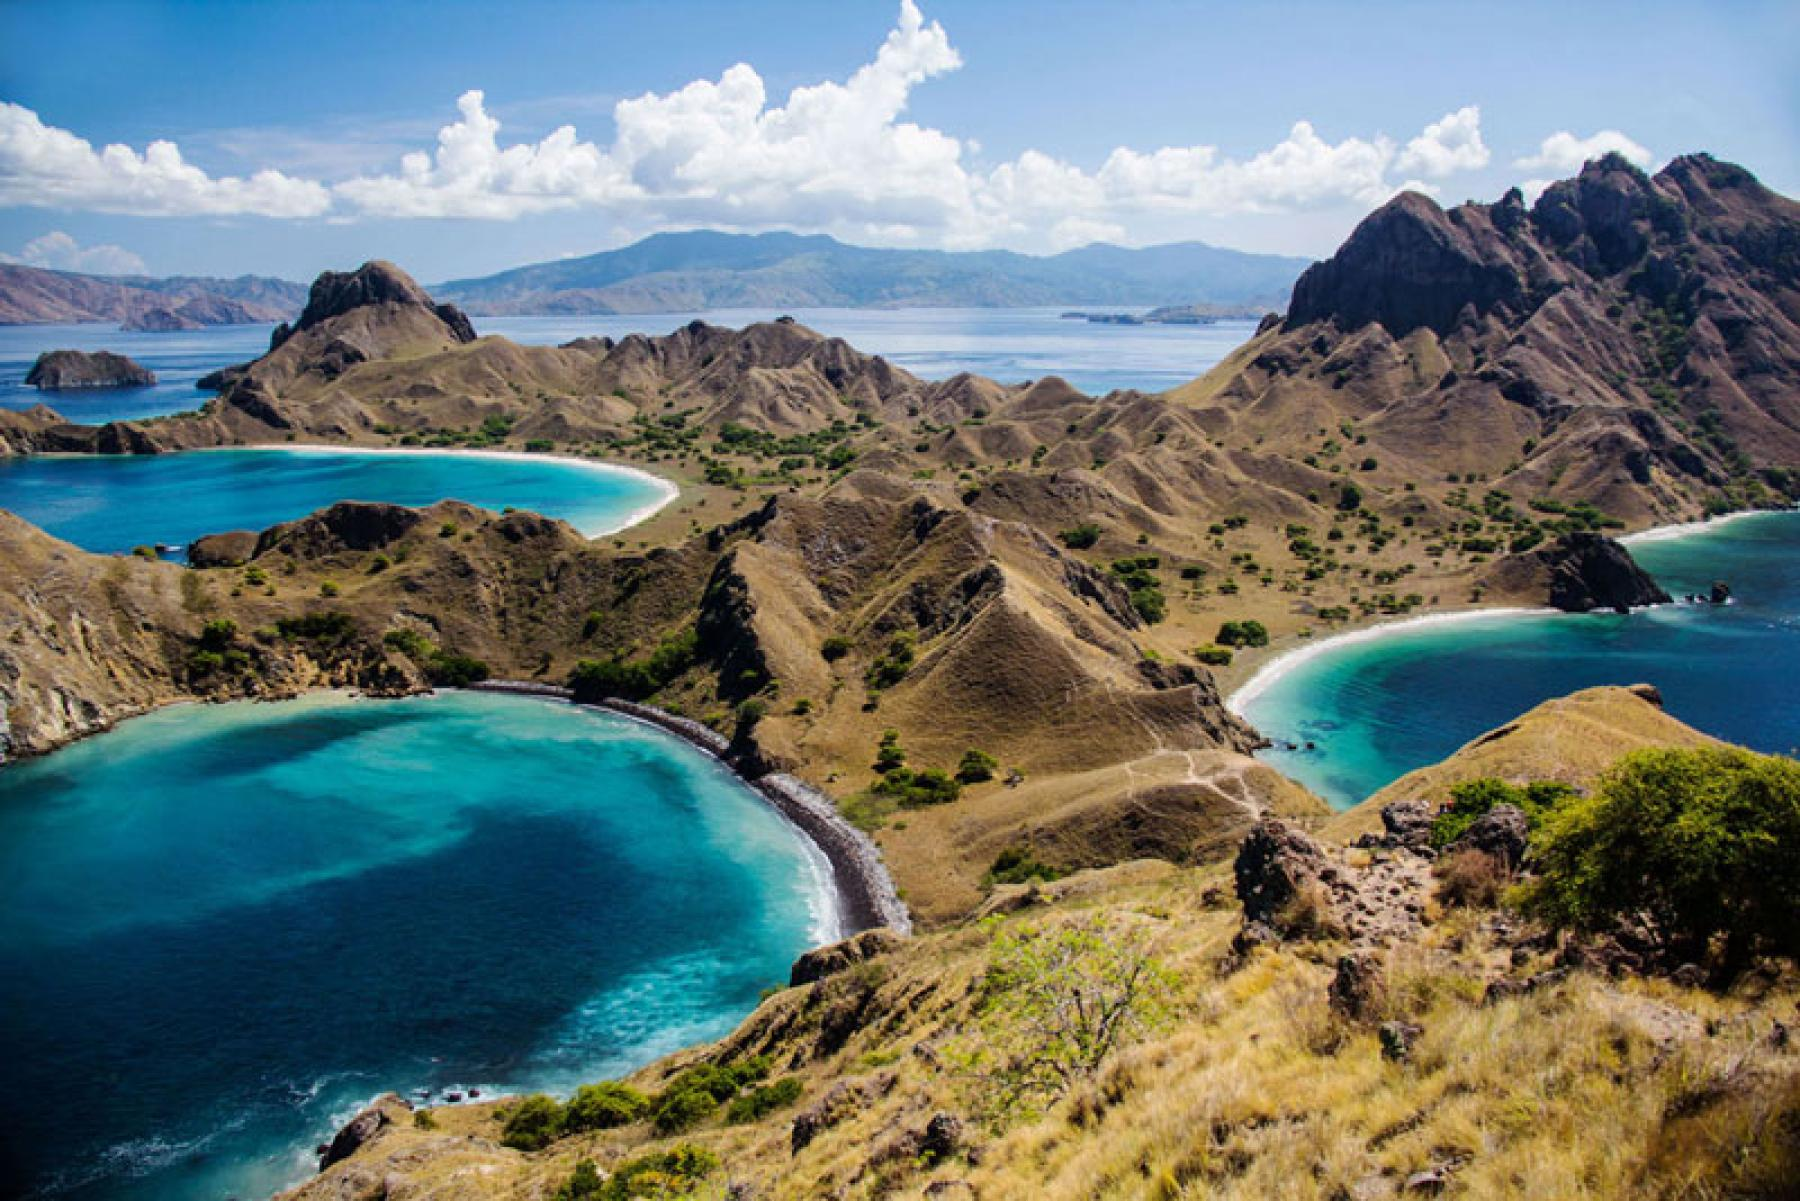 [3D2N] Komodo Islands (Good Friday Weekend + 1 night in Bali) starting at Labuan Bajo, West Manggarai Regency, East Nusa Tenggara, Indonesia